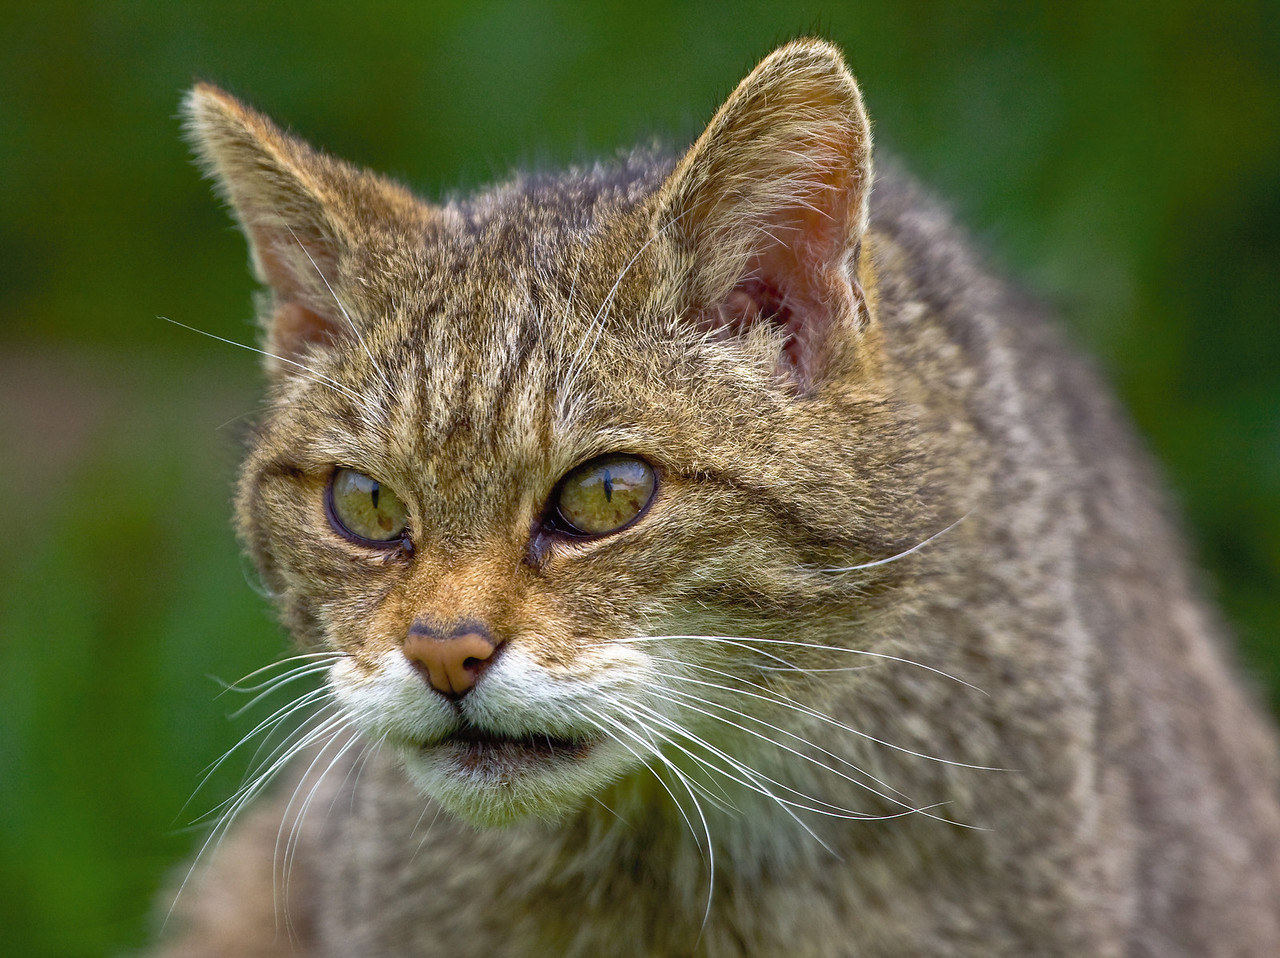 Scottish Wildcat with a very scary stare